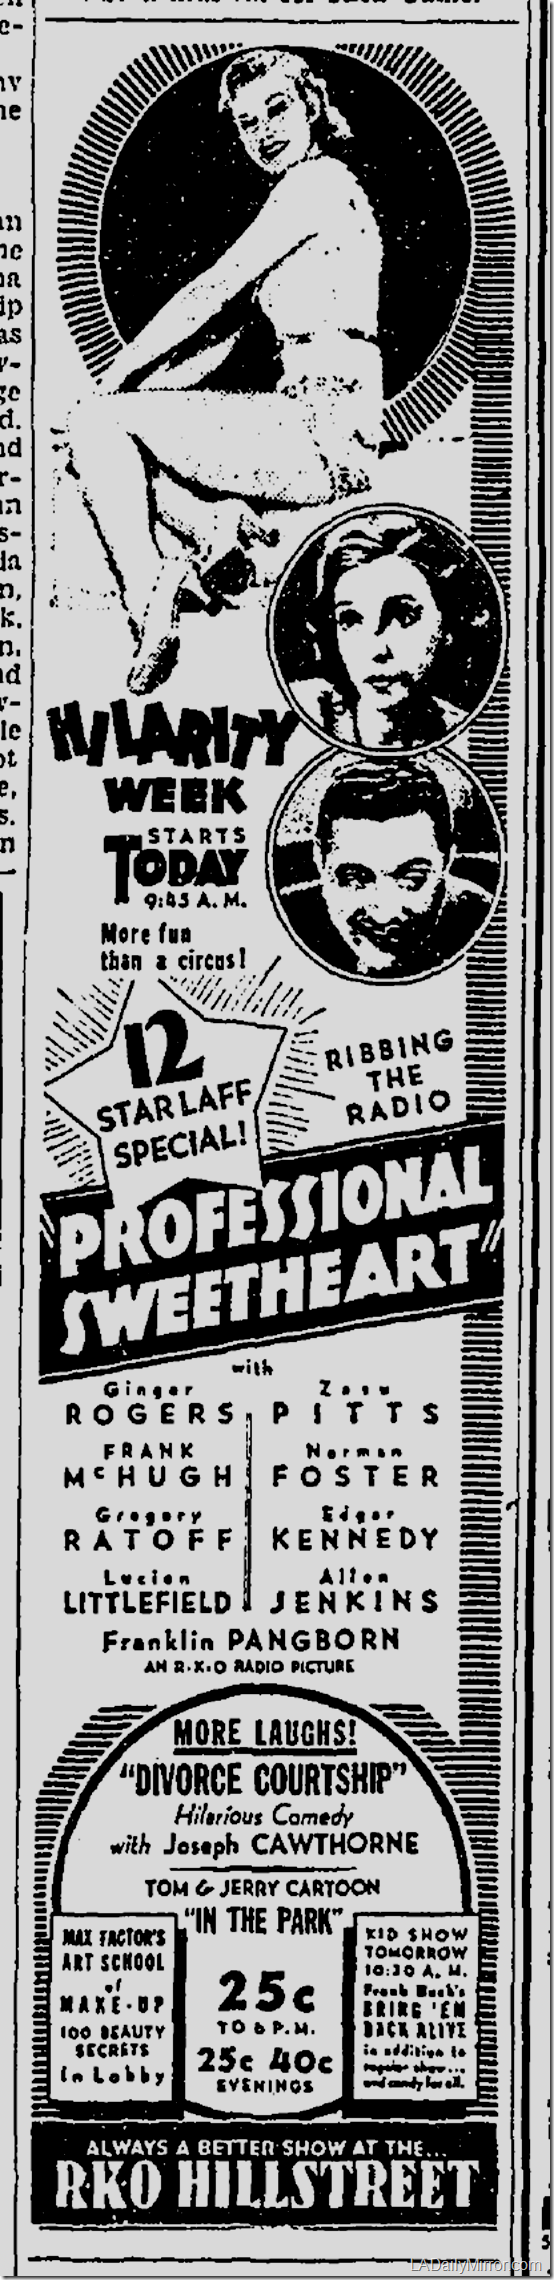 July 28, 1933, Professional Sweetheart